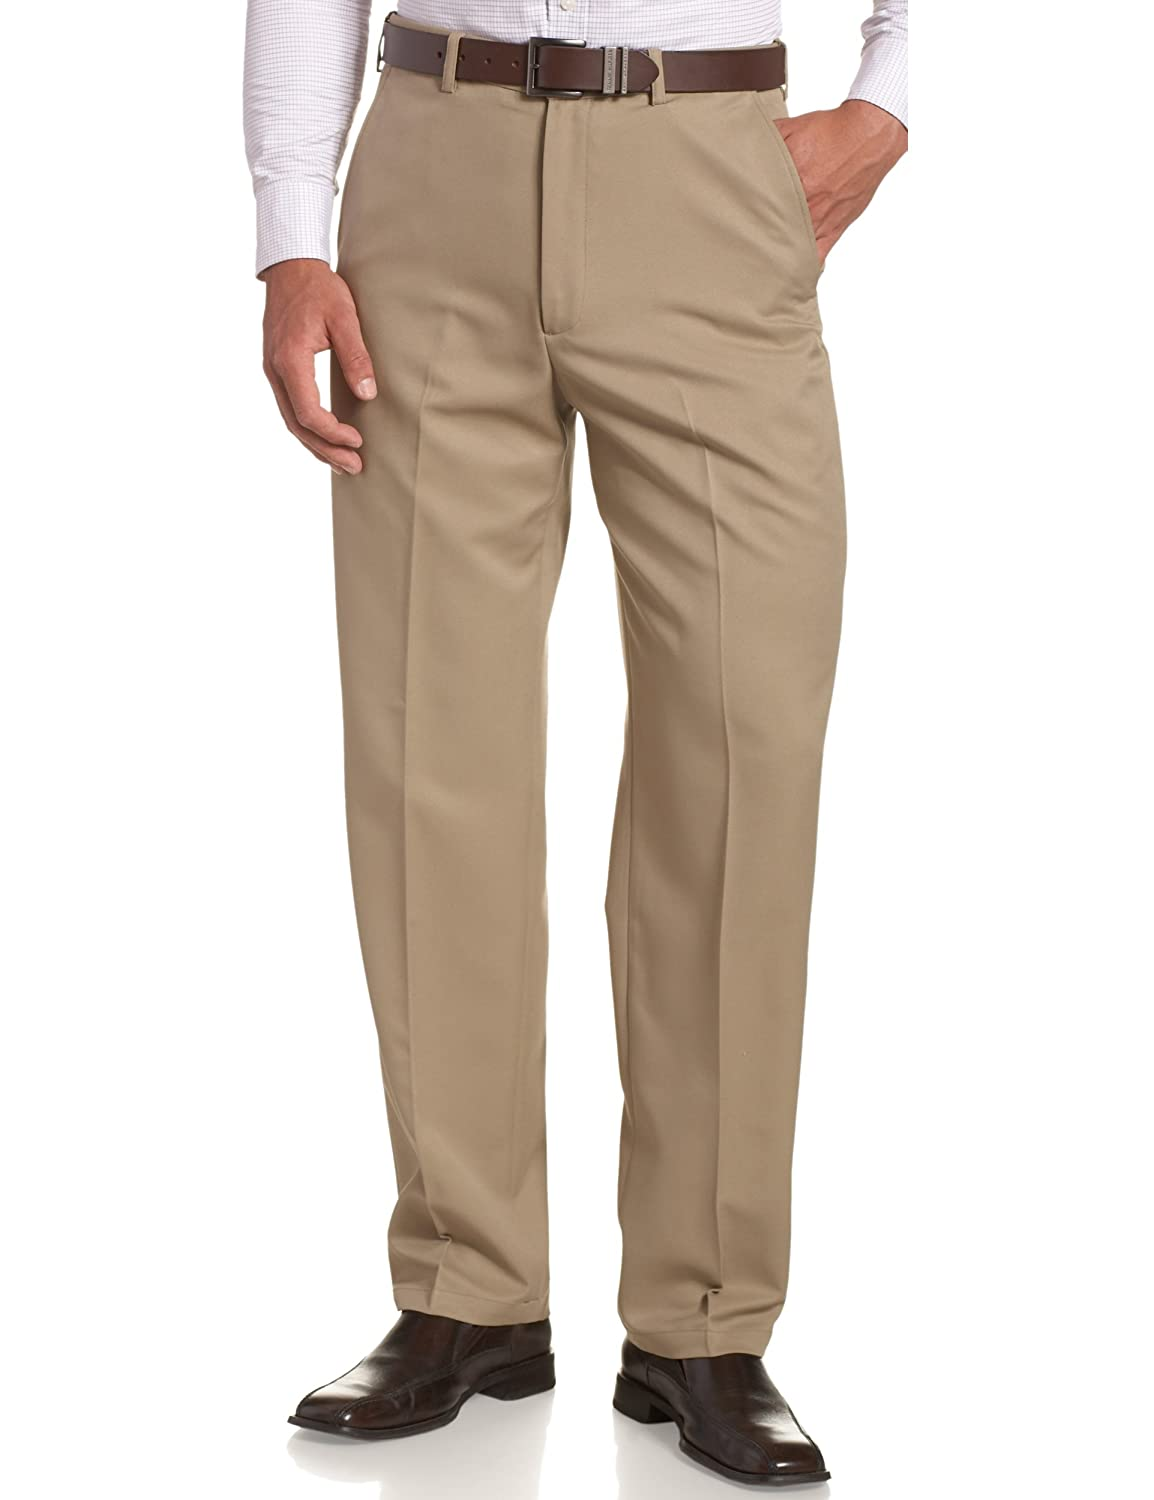 Haggar mens Cool 18 Hidden Expandable-waist Plain-front Pant Haggar Men' s Bottoms 41114529498